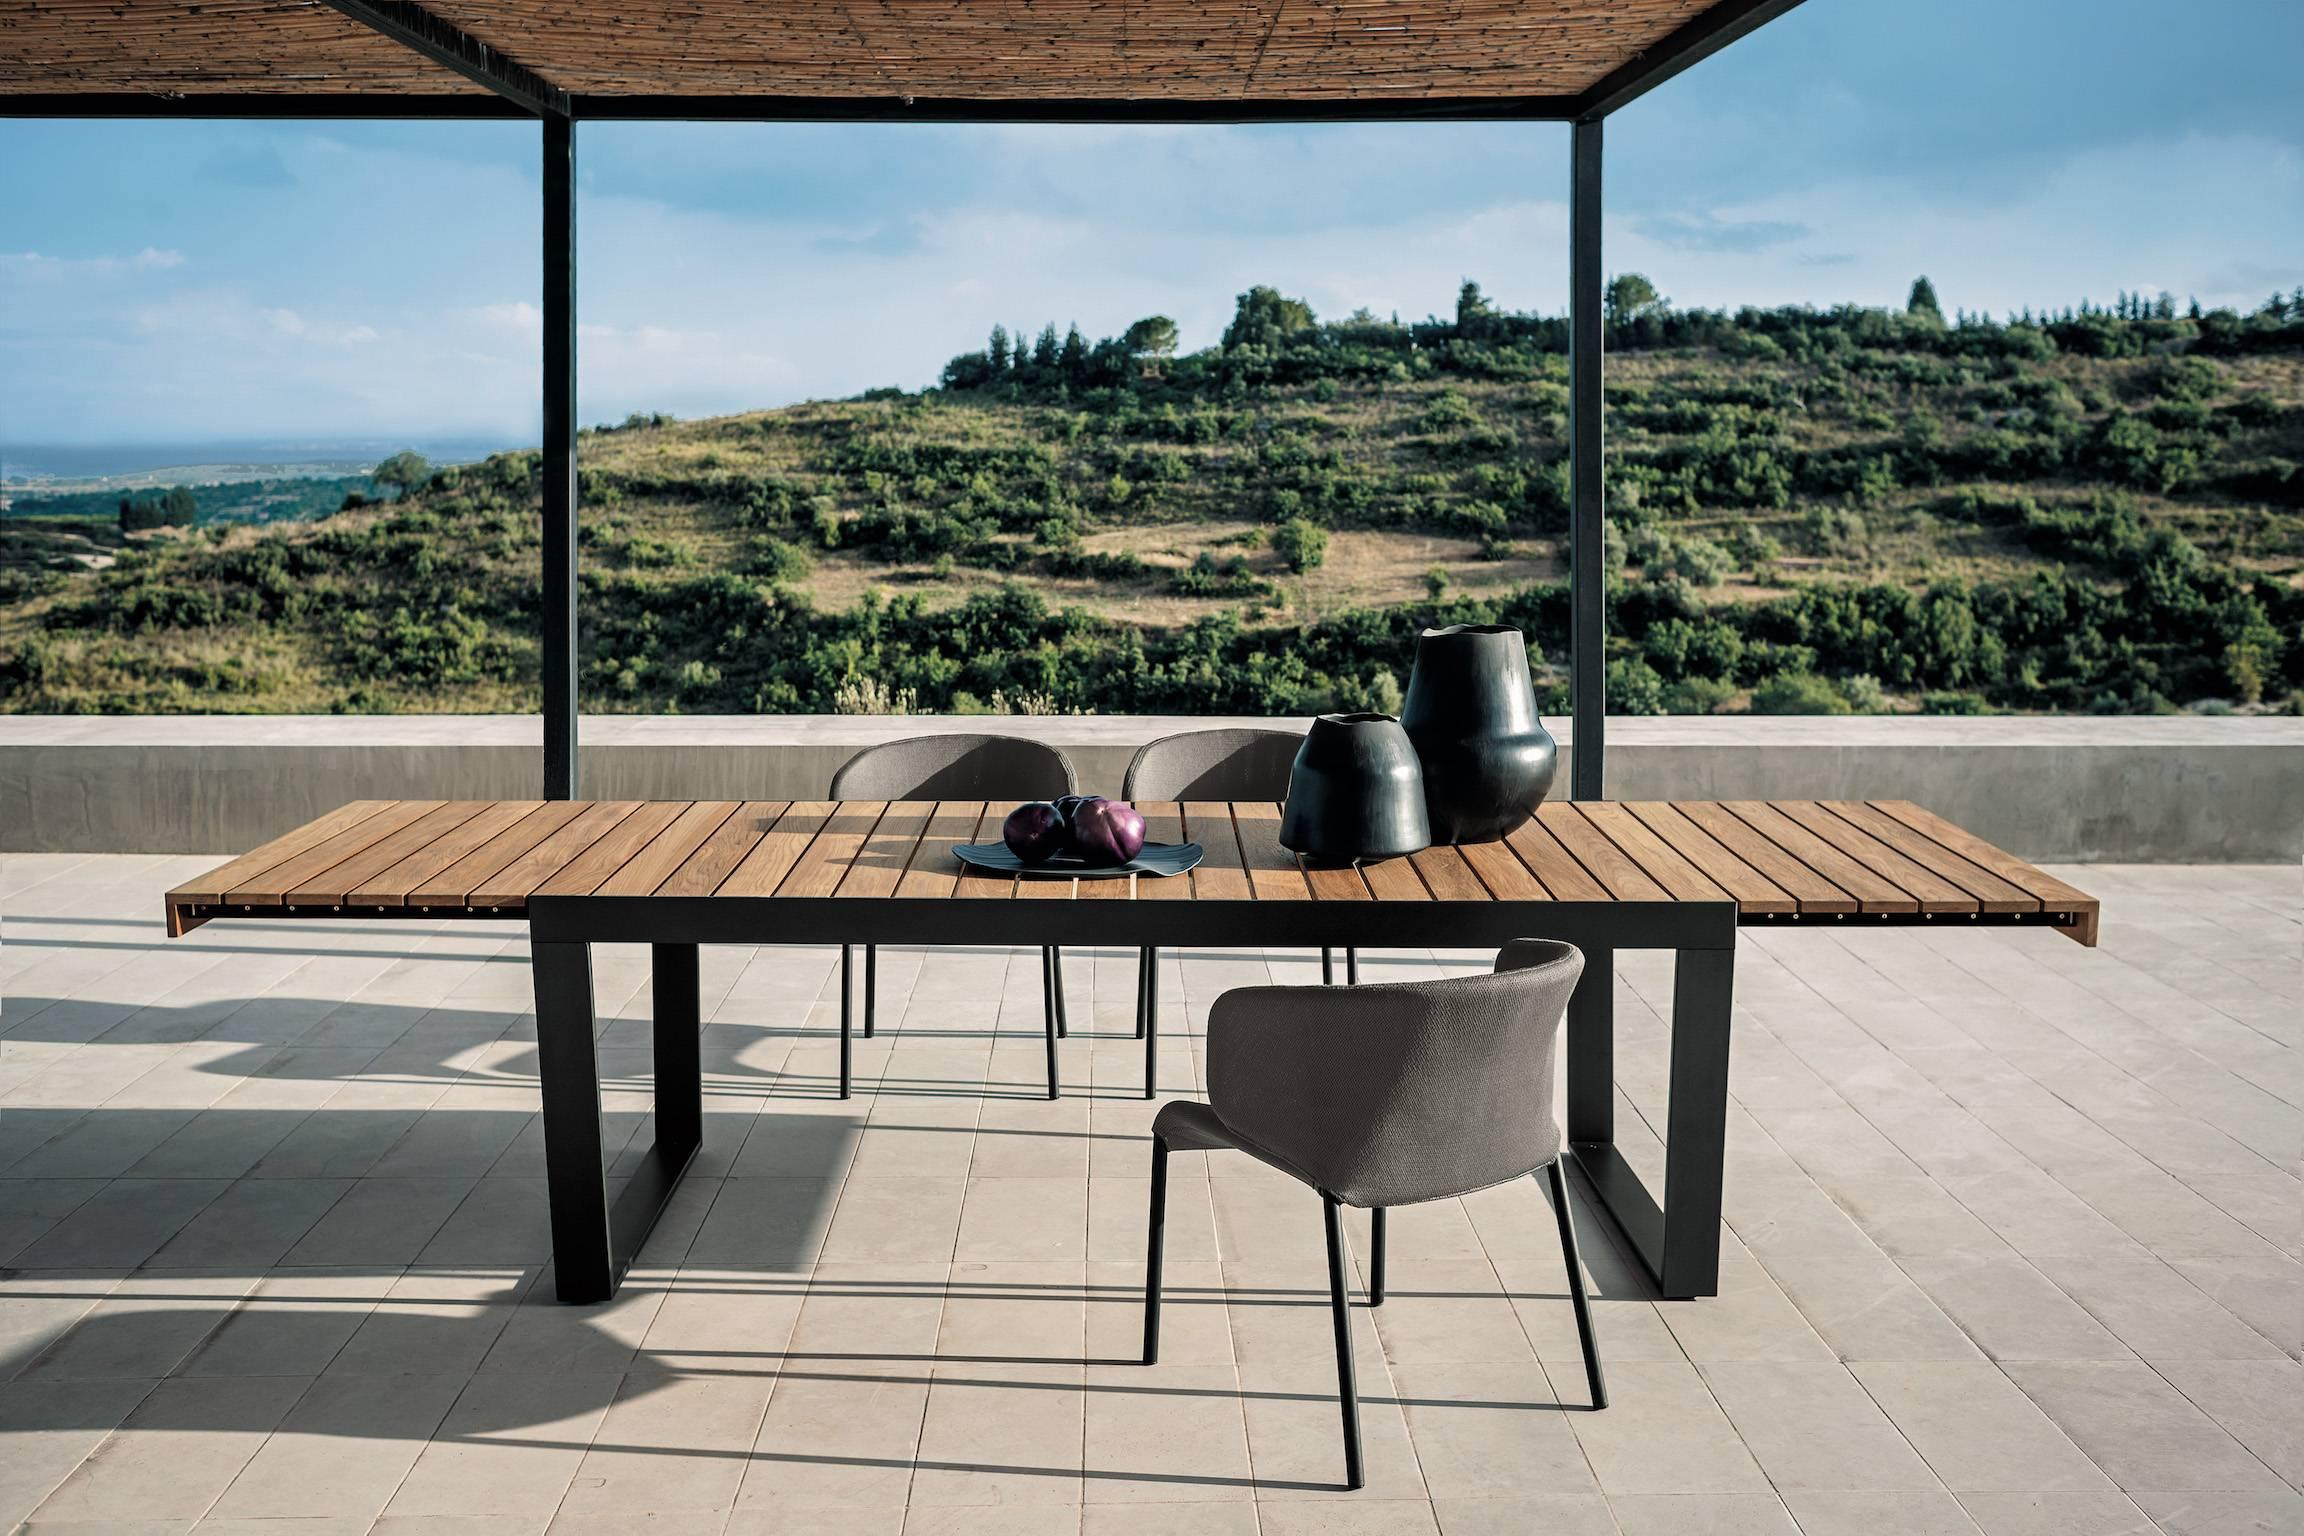 Bon Roda Spinnaker Extendable Dining Table For Outdoor/Indoor Use In Teak And  Steel For Sale At 1stdibs